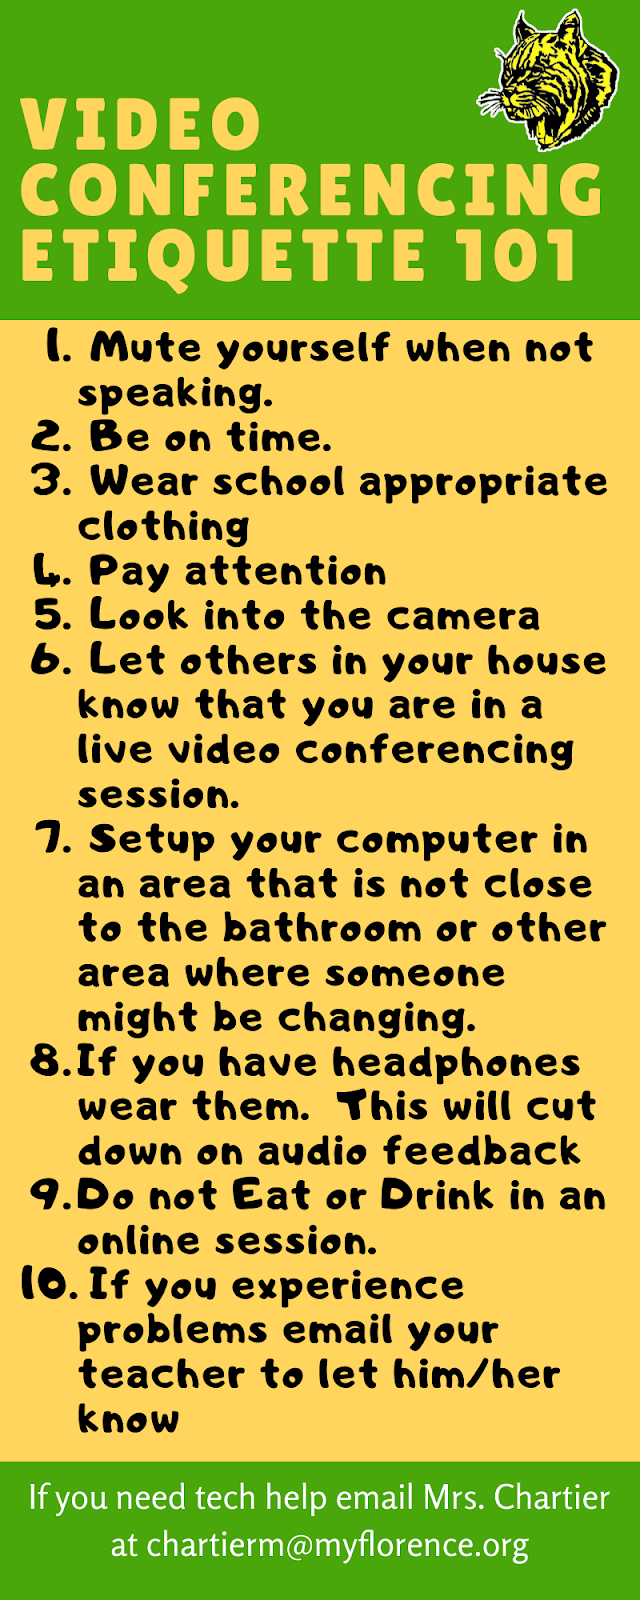 Video Conferencing Etiquette 101 1. Mute yourself when not speaking, 2. Be on time, 3 Wear appropriate Clothing, 4 Pay attention, 5 look into the camera 6 Let others in your house know you are in a live video session 7 setup computer in an area that is not close to a bathroom or other area where someone might be changing, 8 If you have headphone wear them, 9 Do not eat or drink in an online session, 10 If you experience problems let your teacher know